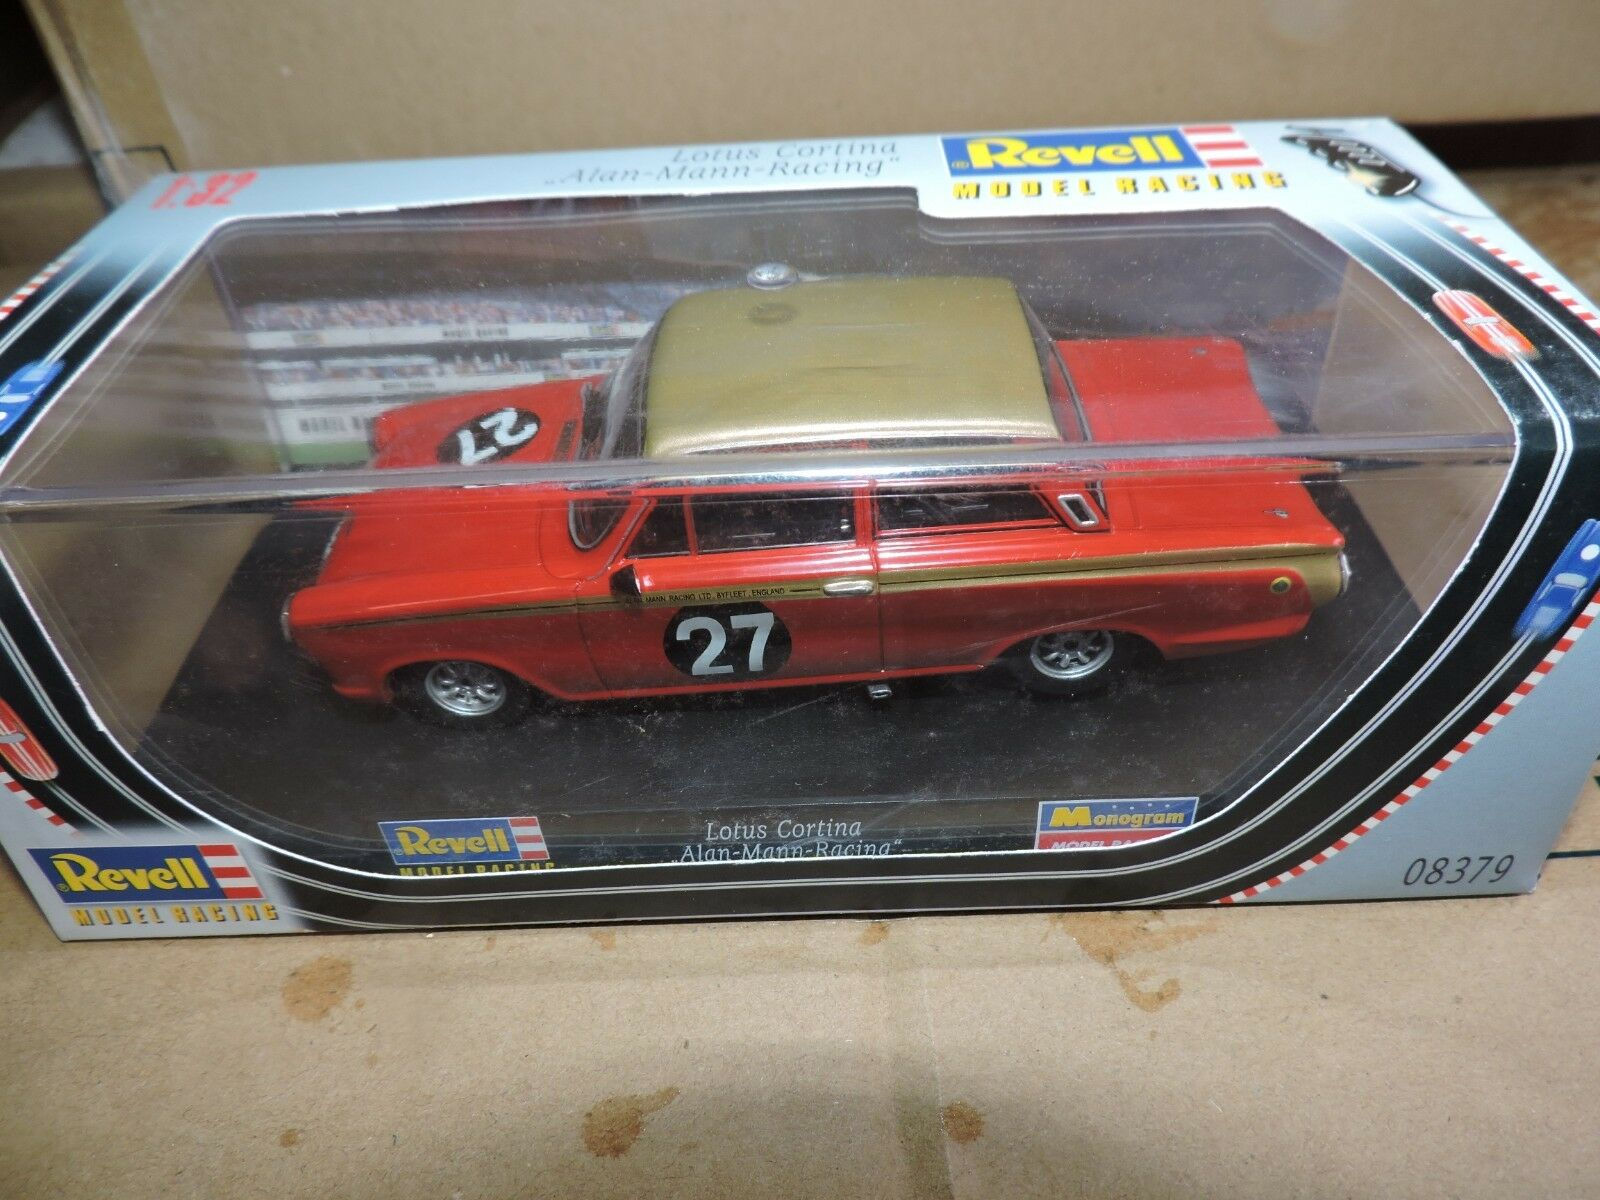 REVELL 1 32nd Scale slot car Lotus Cortina Nº 27 Alan Mann Racing   08379